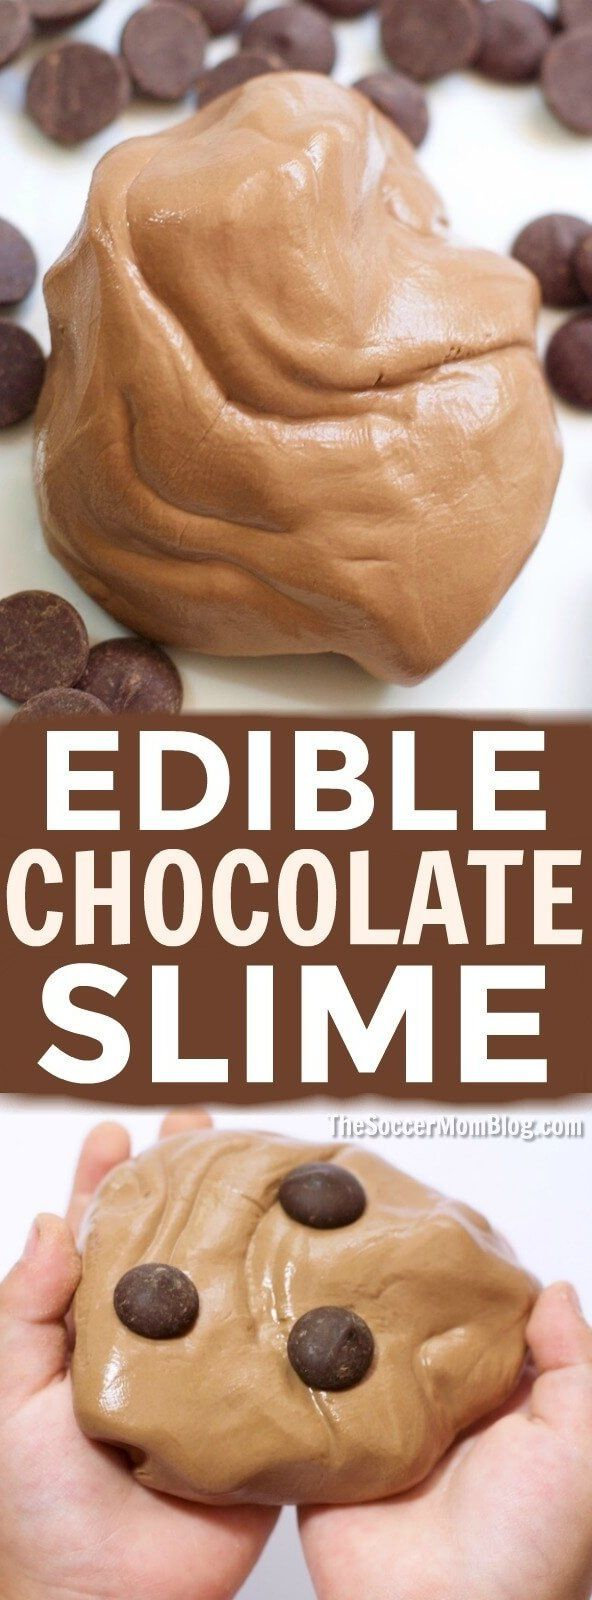 Edible Chocolate Slime Recipe - Only 3 Ingredients!